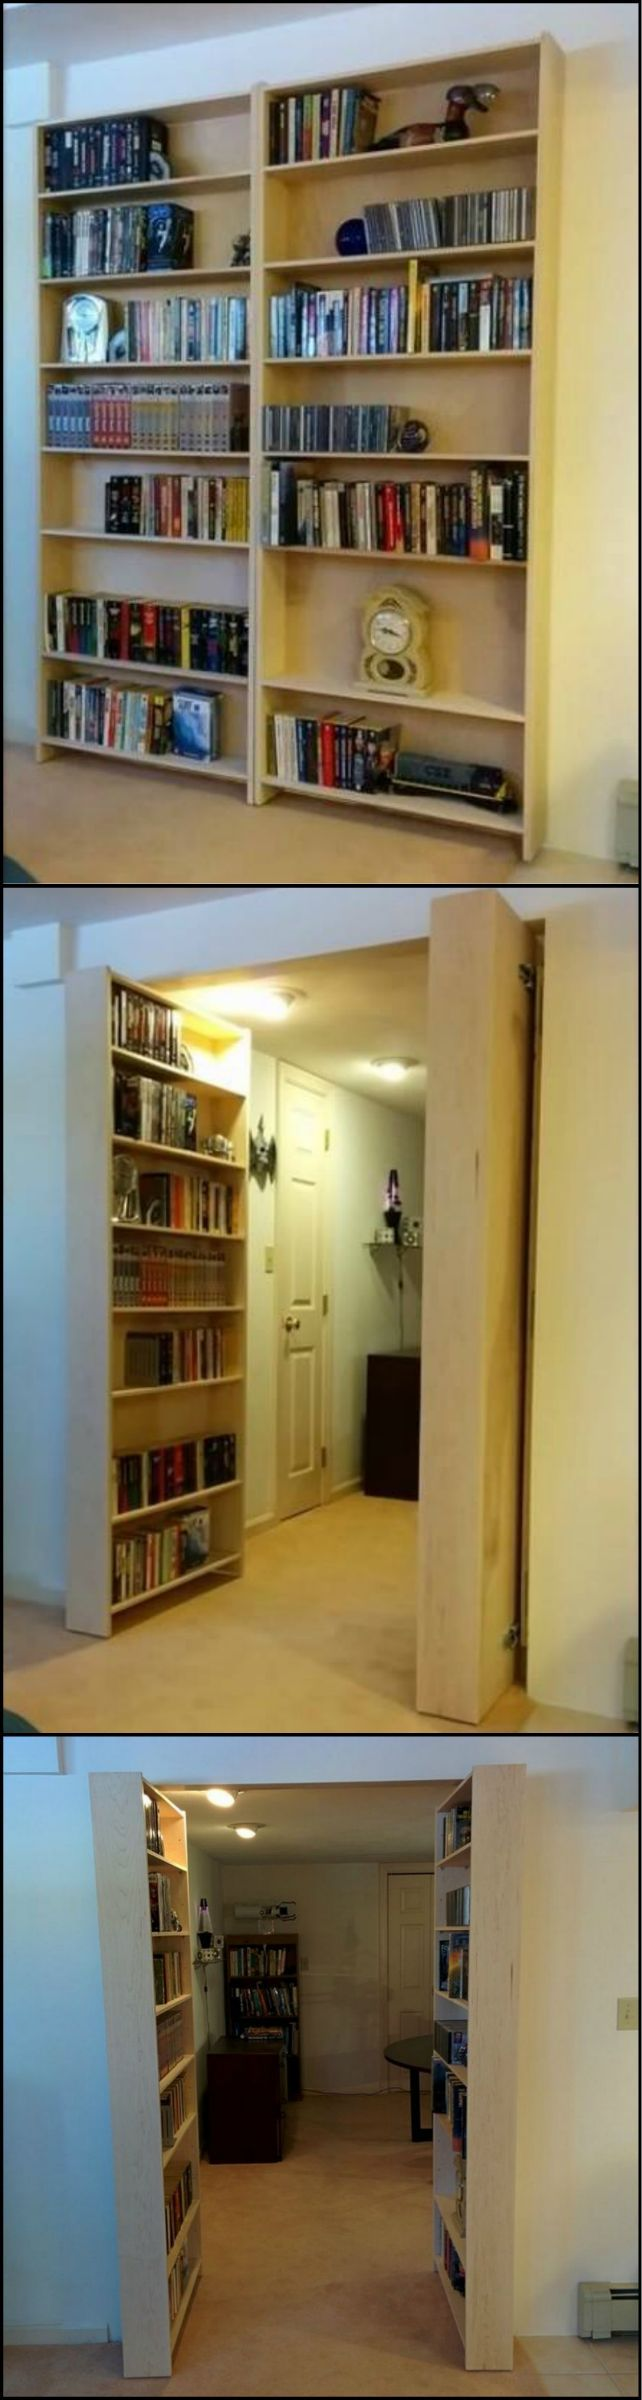 Tutorial: How To build A Hidden Bookcase Door  http://theownerbuildernetwork.co/kkwp  A bookcase that doubles as a secret door! Learn how it's made!